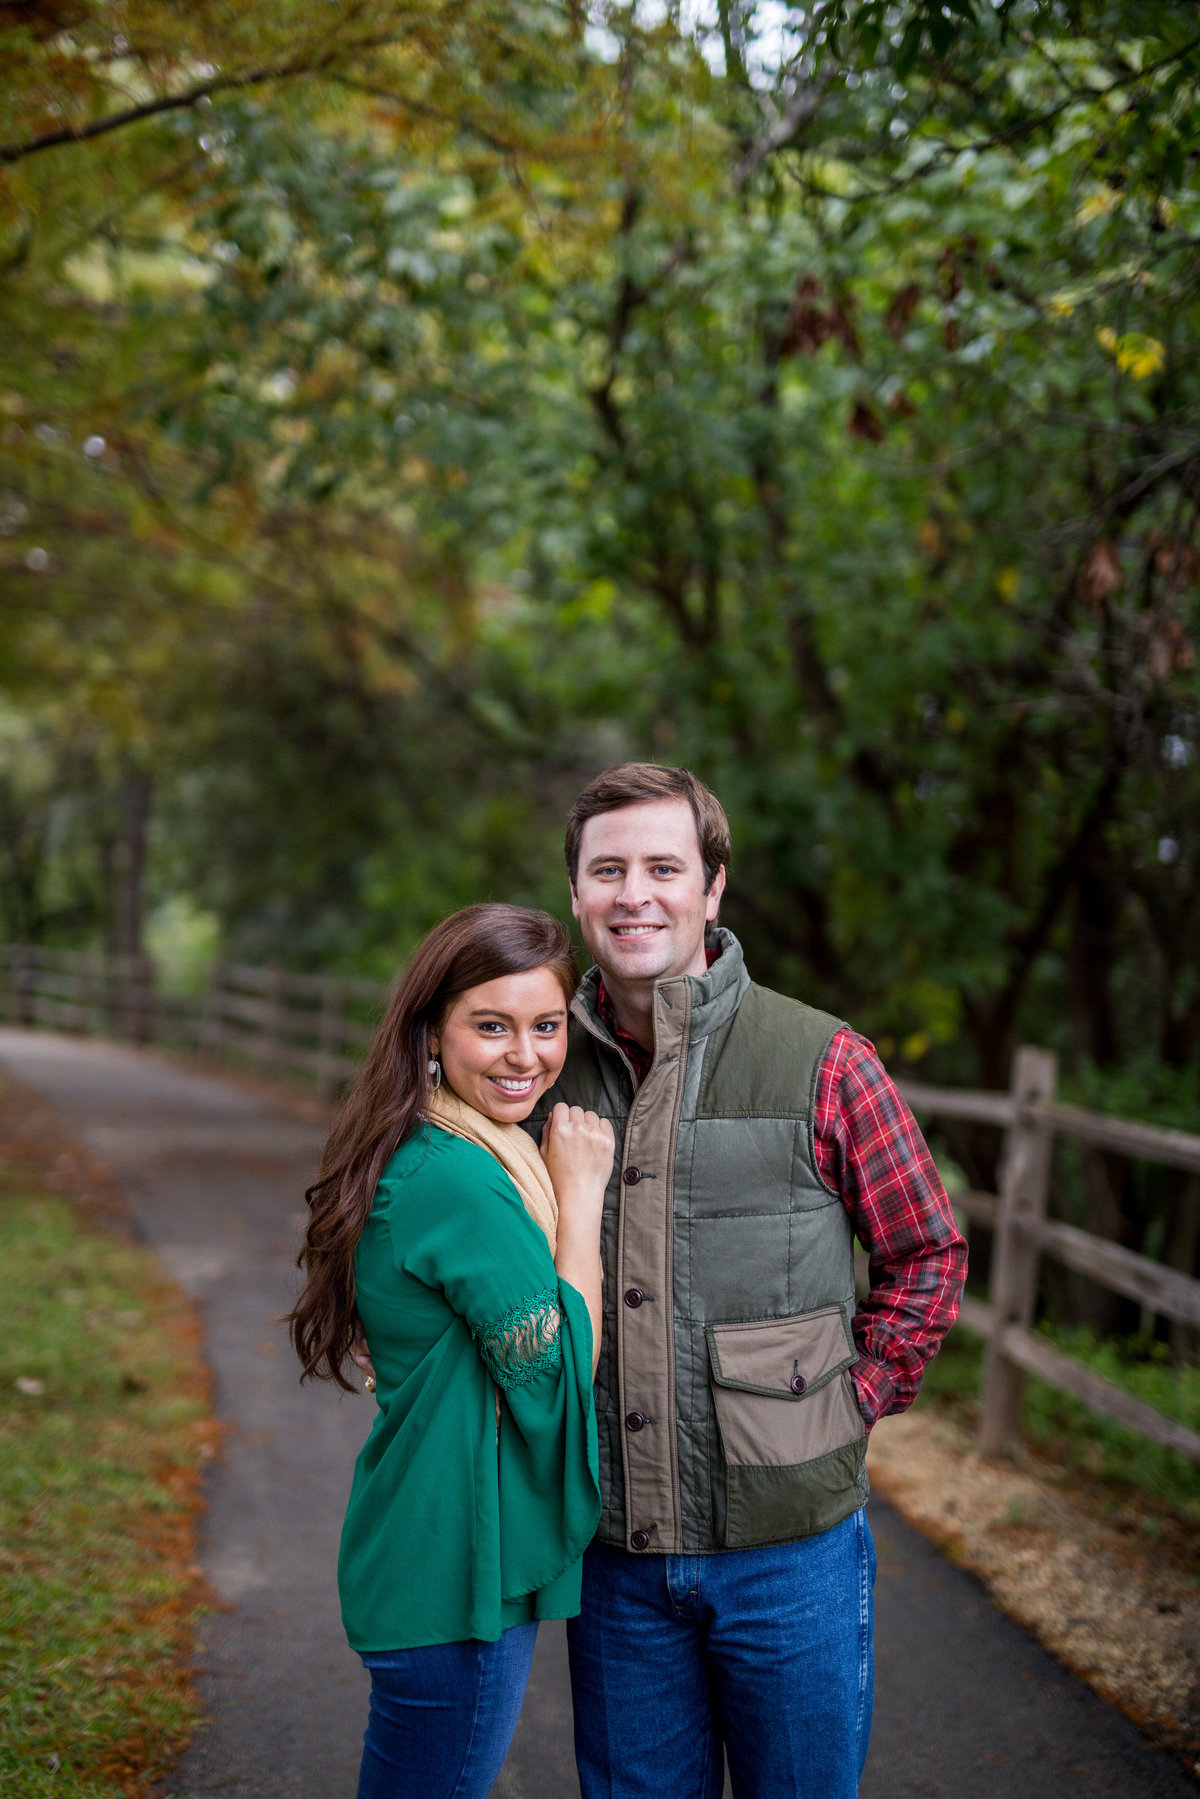 portrait of a married couple for holiday and fall photo session by San Antonio photographer Expose The Heart